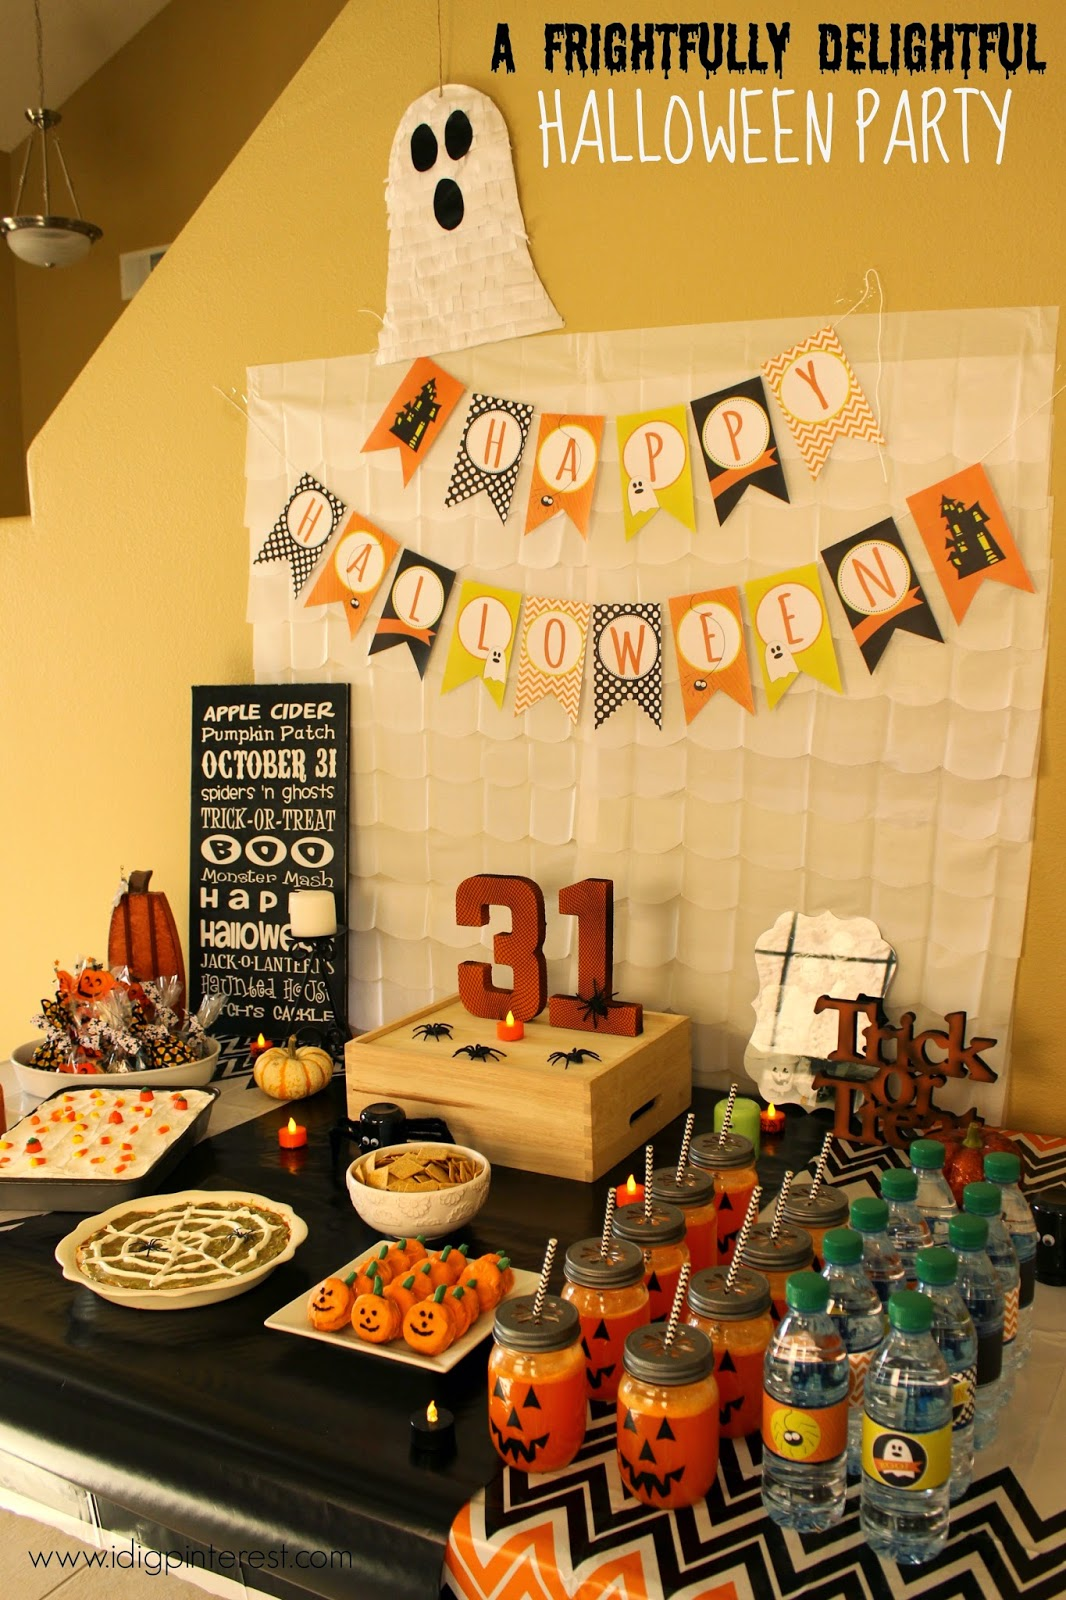 A Frightfully Delightful Halloween Party with Festive Halloween ...